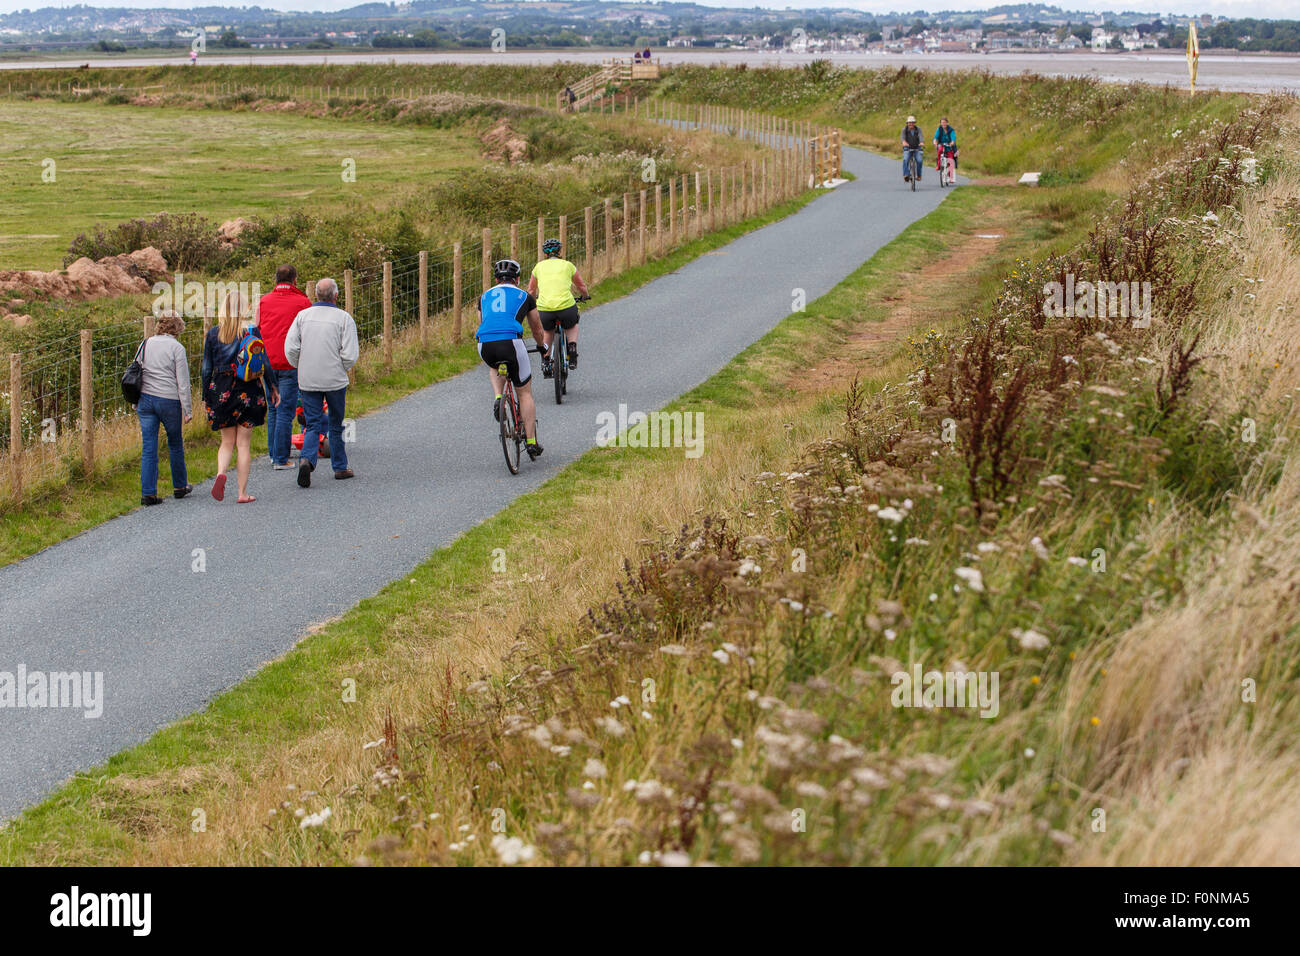 Cyclists and walkers on the river Exe trail and Coast path, west side of the river. - Stock Image